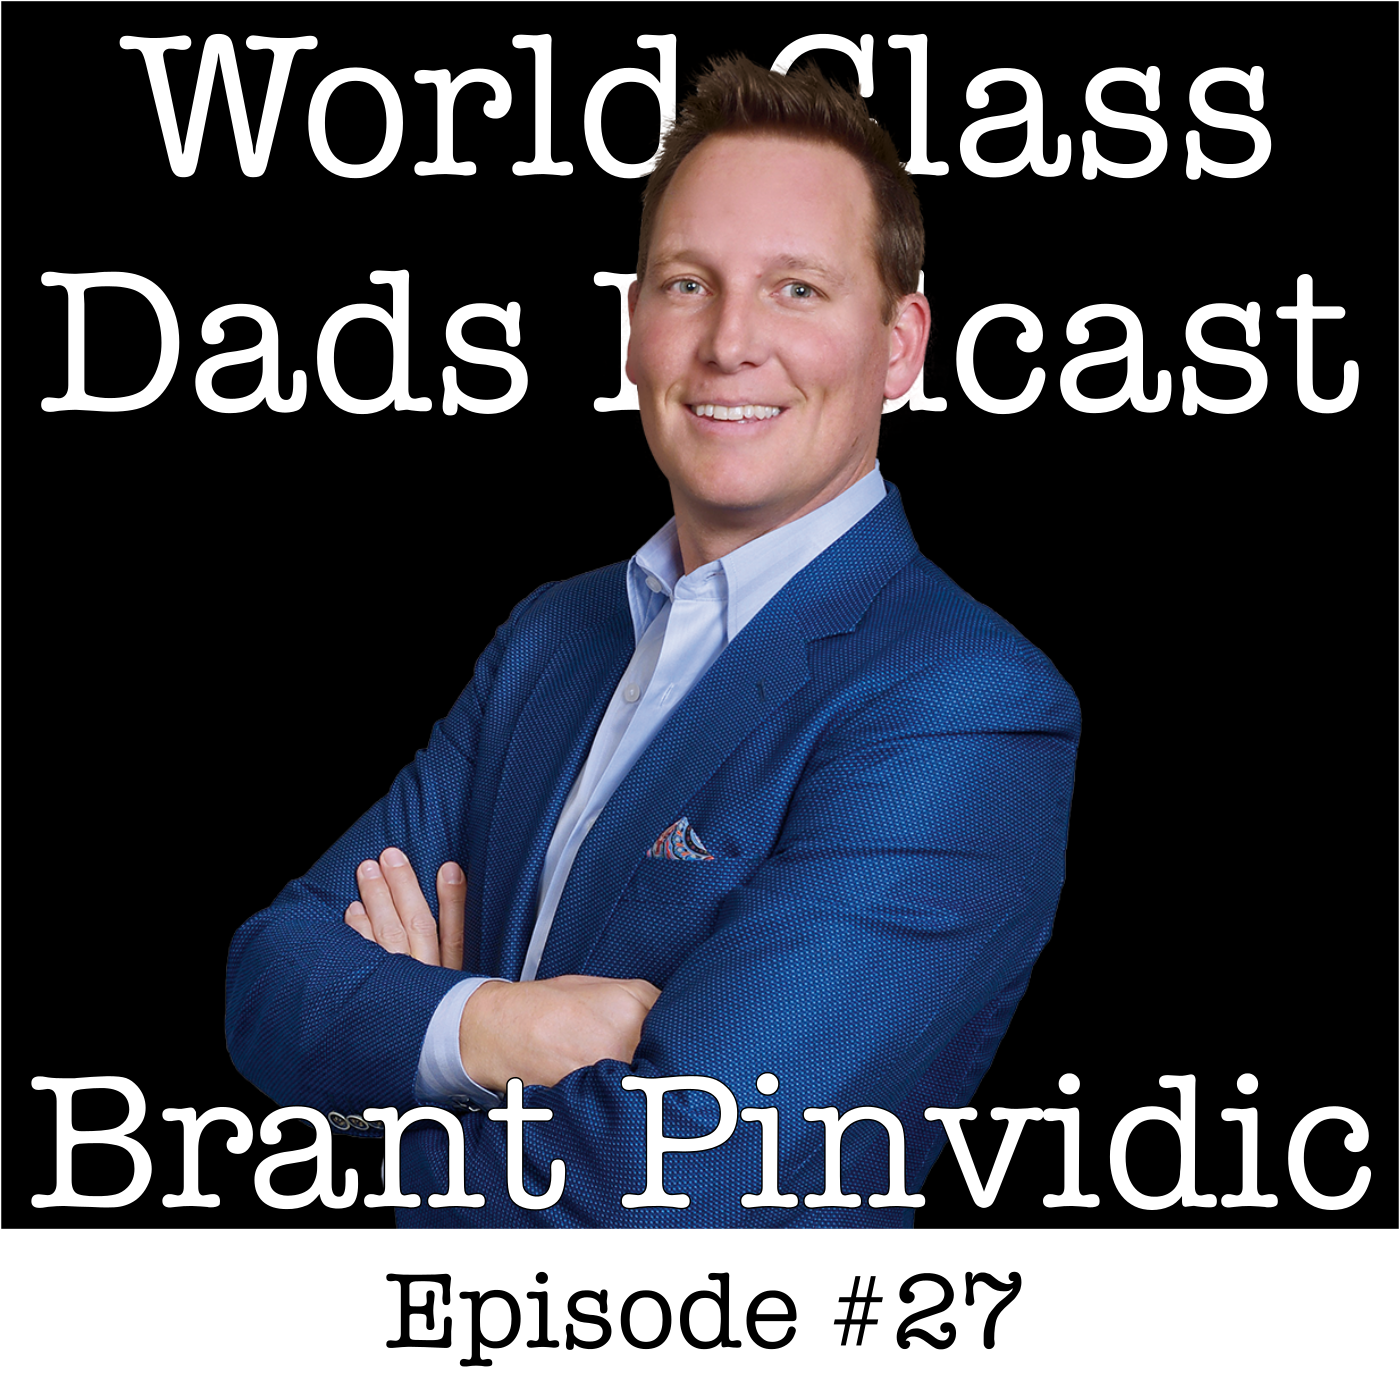 BRANT PINVIDIC - Be In the Center of Family Experiences, Not the Sidelines